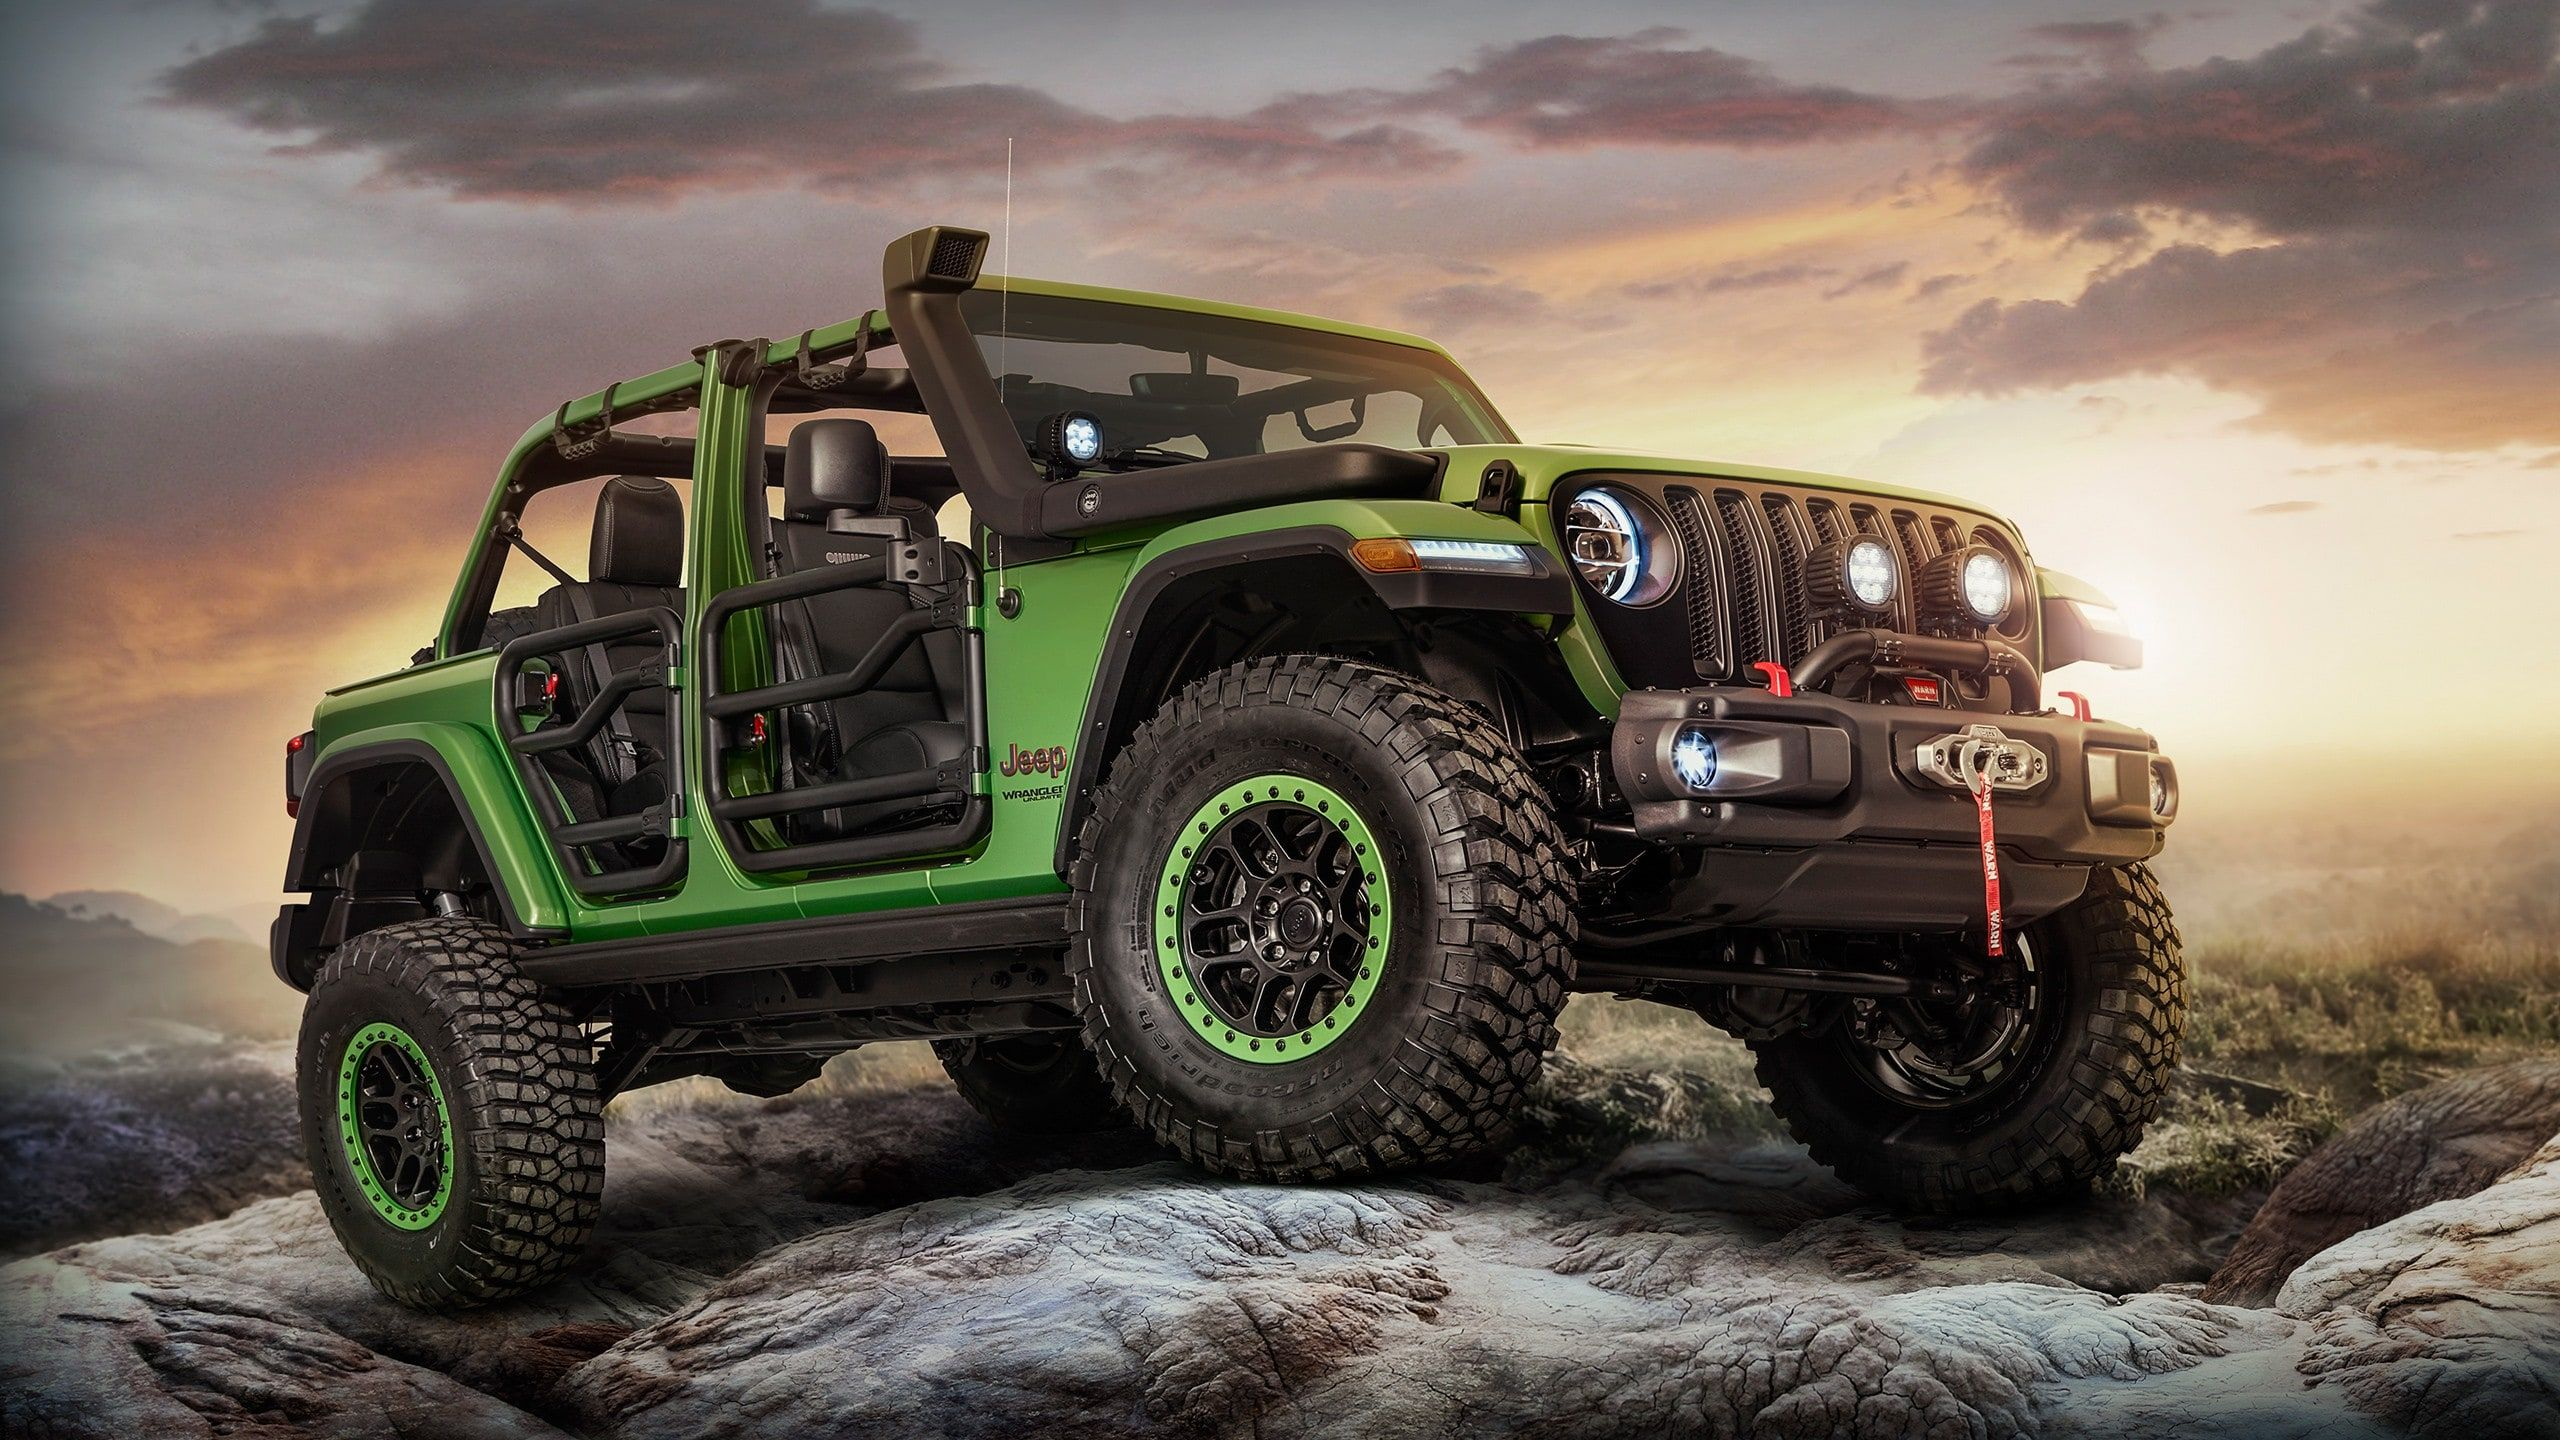 Jeep 4K Wallpapers   Top Jeep 4K Backgrounds   WallpaperAccess 2560x1440